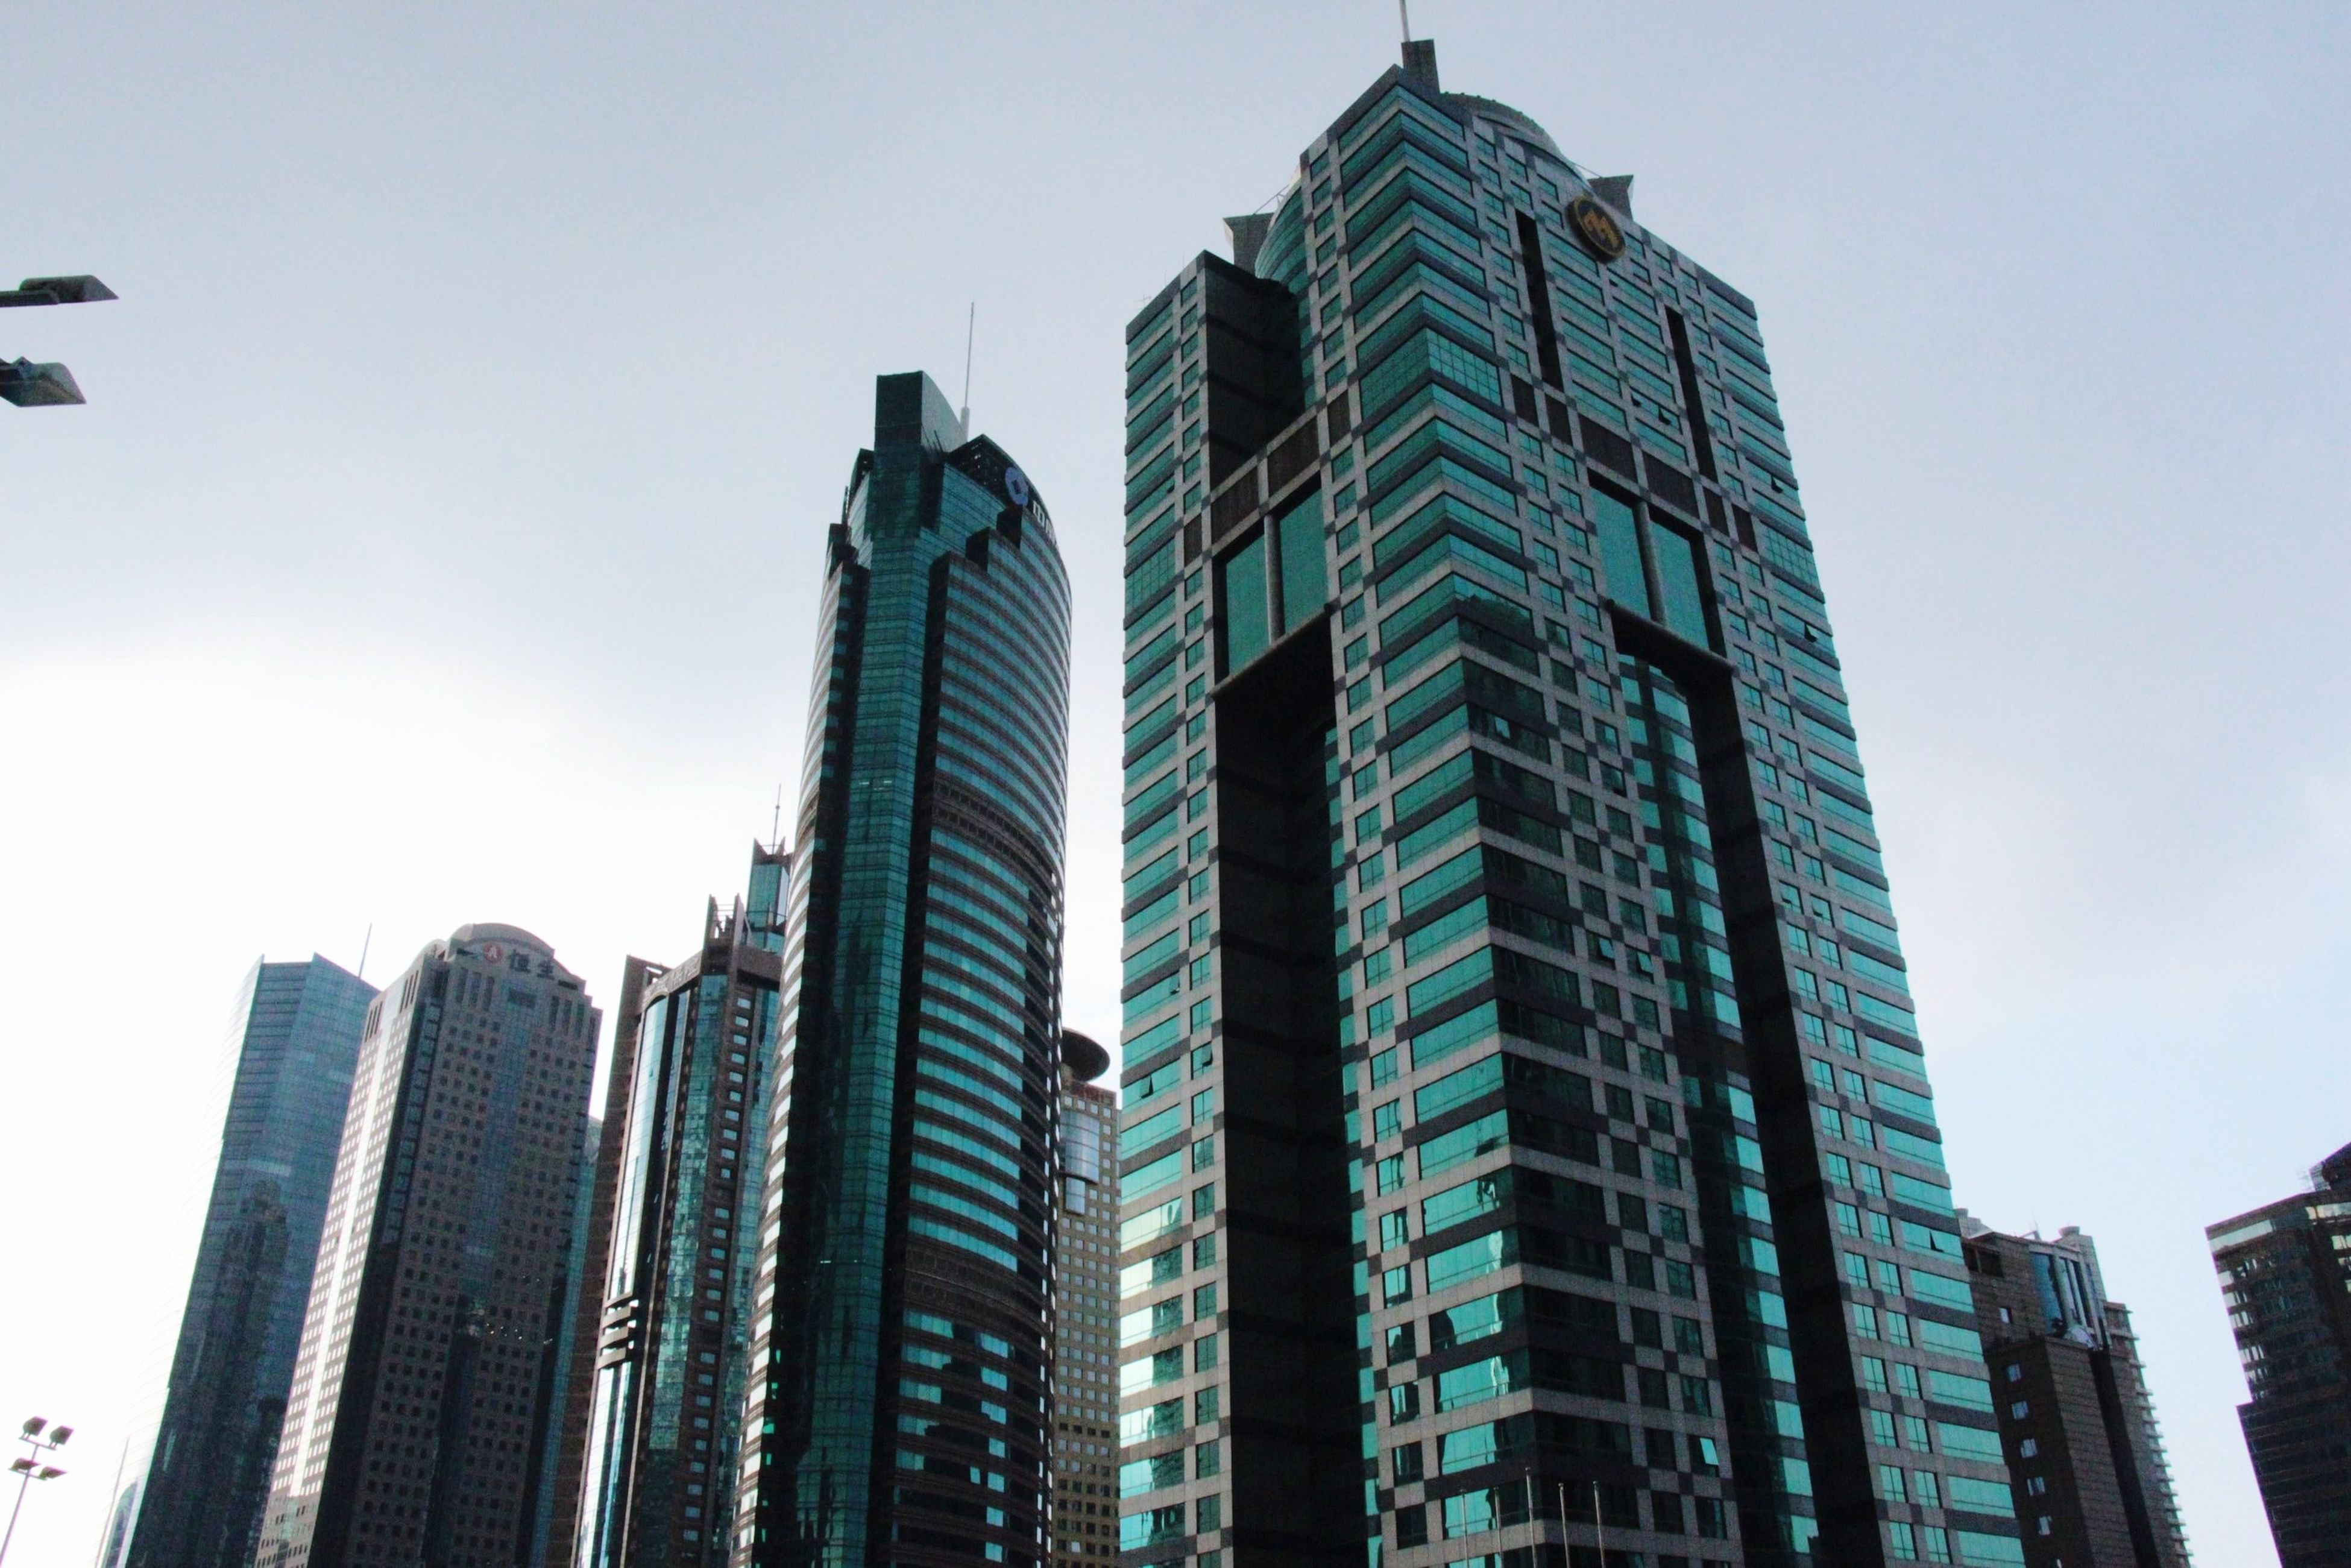 building exterior, architecture, built structure, skyscraper, city, tall - high, office building, modern, low angle view, tower, clear sky, financial district, urban skyline, building, tall, sky, city life, cityscape, capital cities, day